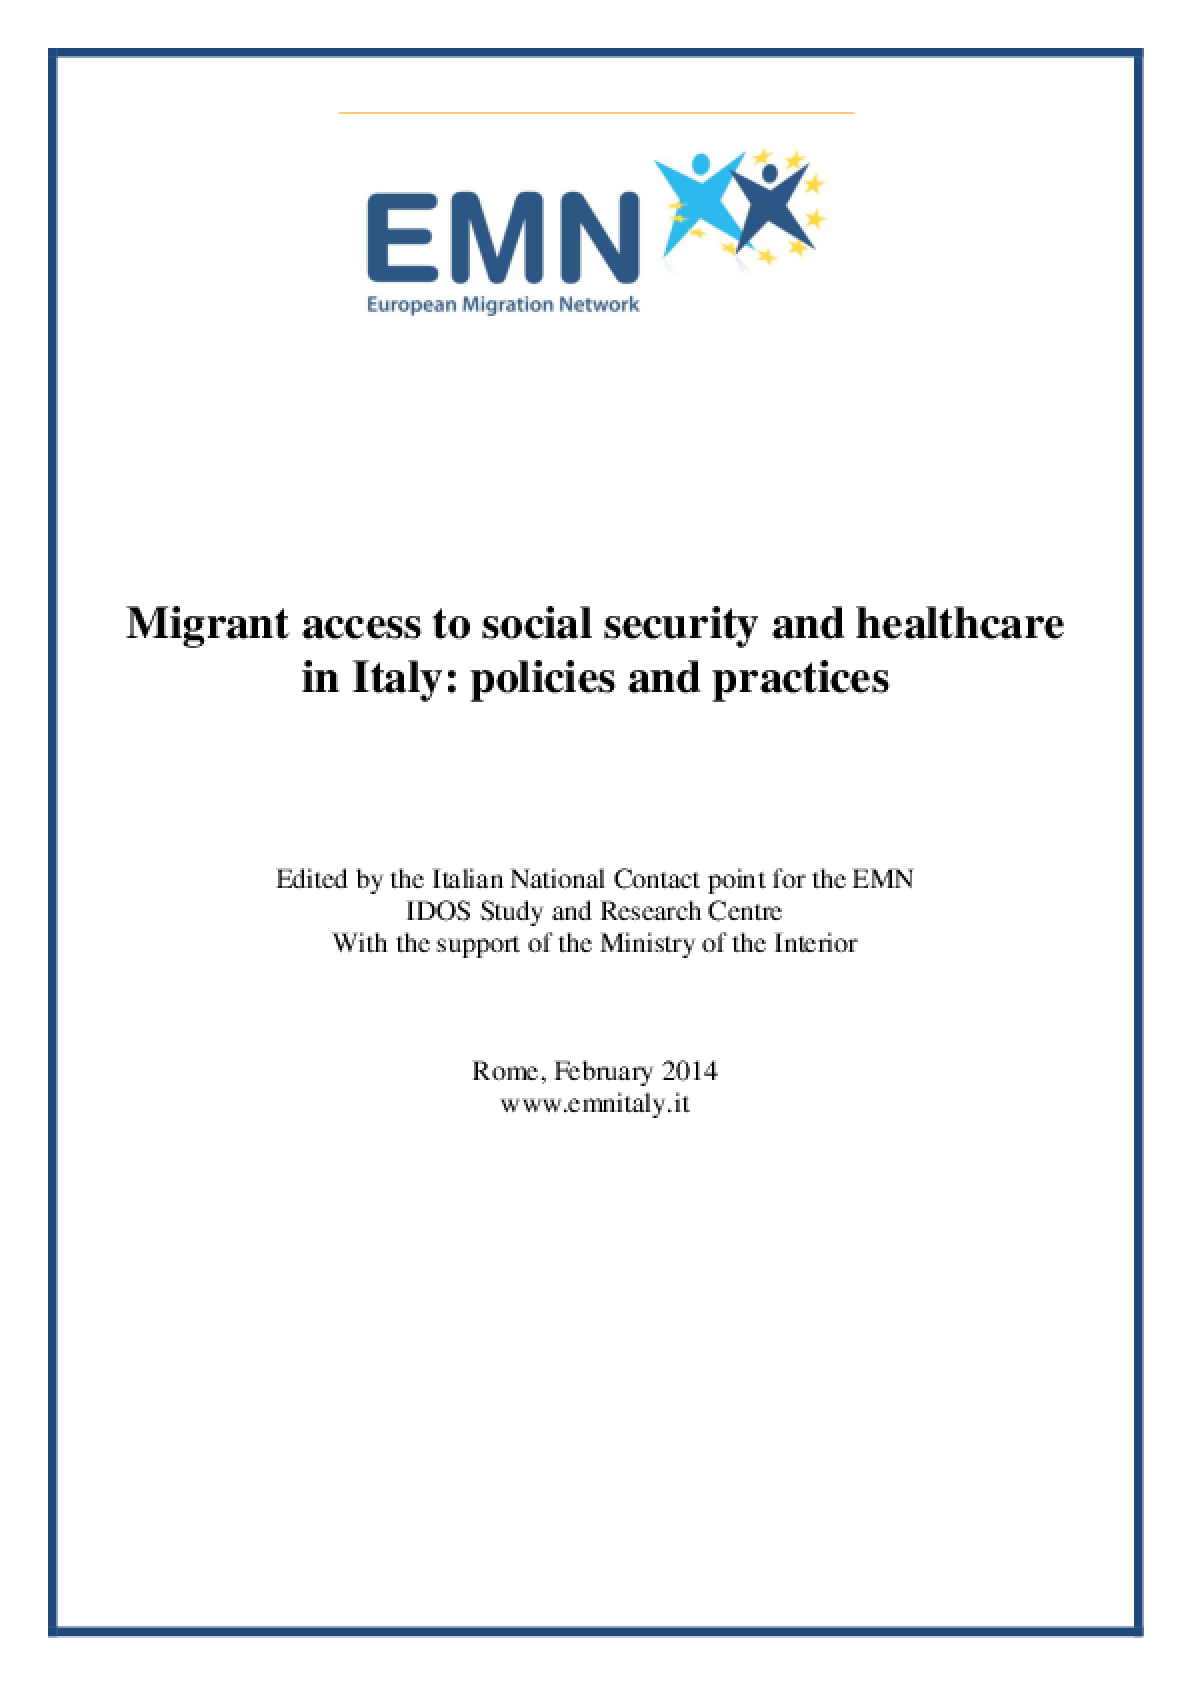 Migrant Access to Social Security and Healthcare in Italy: Policies and Practices